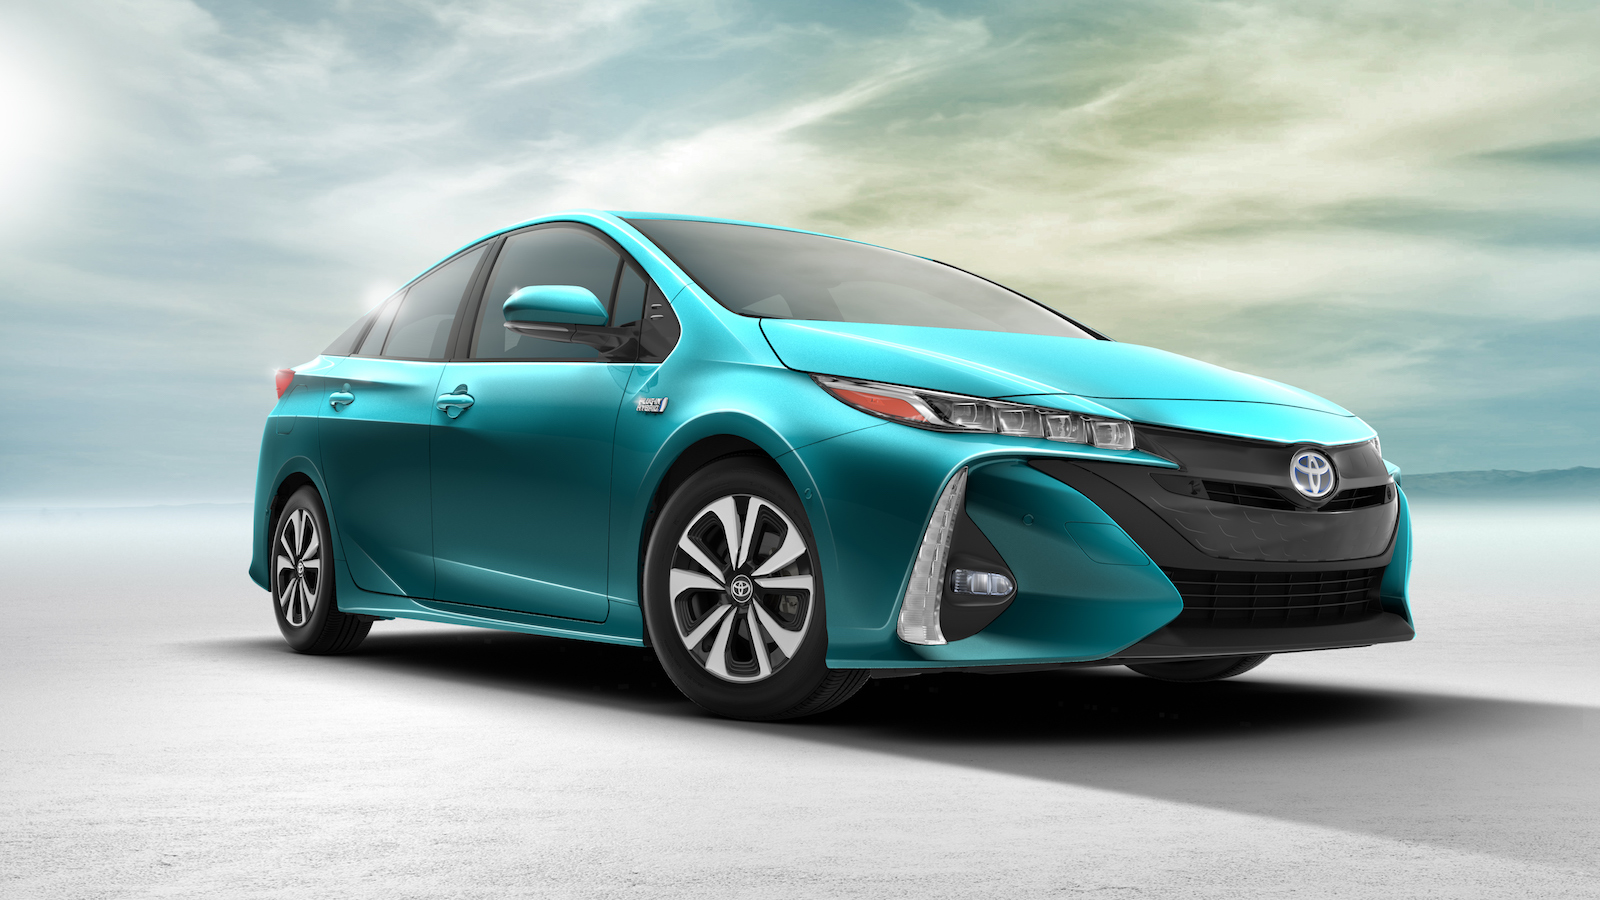 2016 toyota prius prime details on 120 mpge plug in. Black Bedroom Furniture Sets. Home Design Ideas